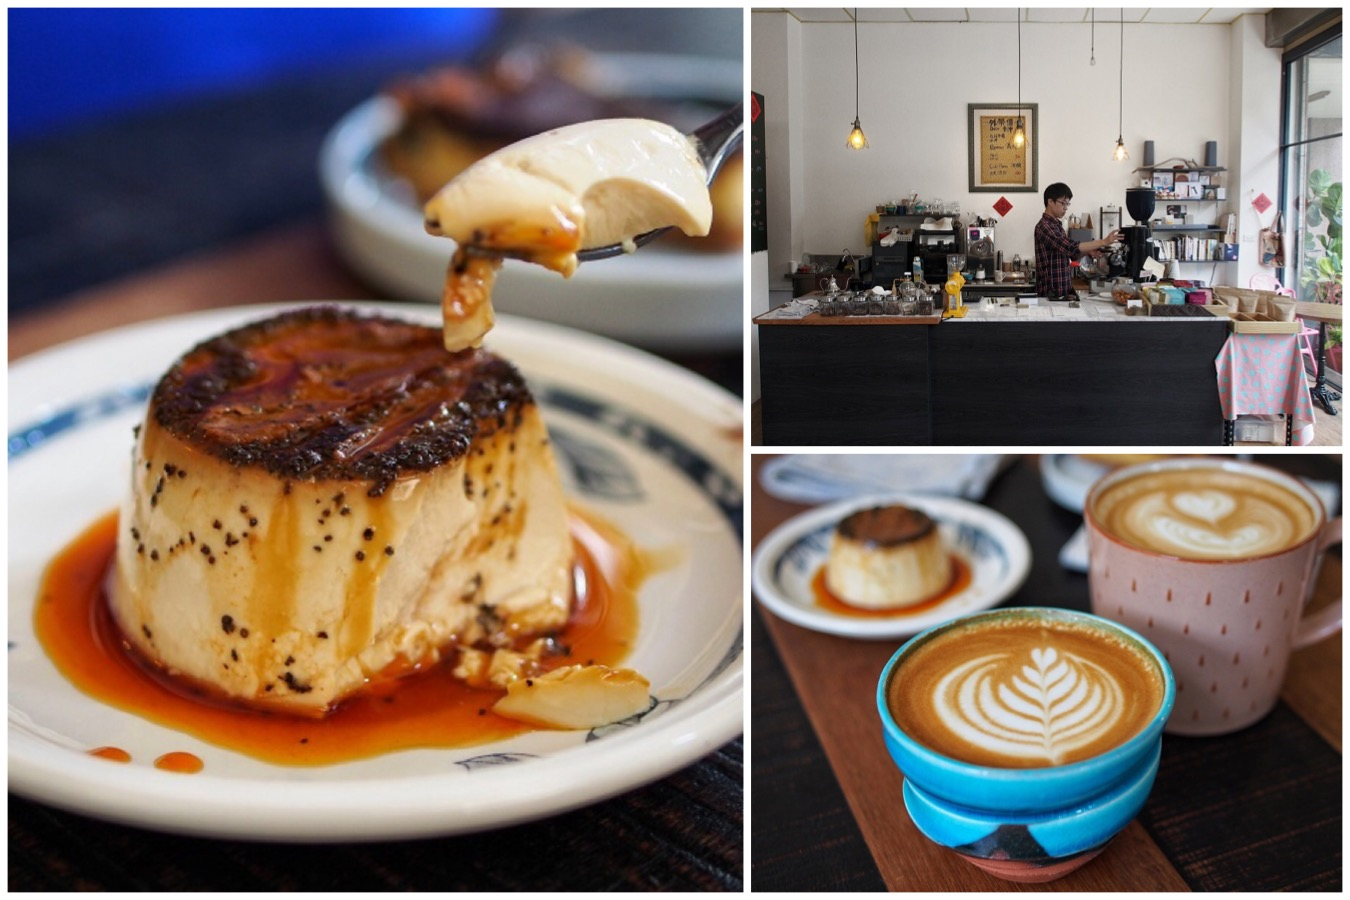 Monga Coffee Roasters 丸花豆倉 – Daily Limited Earl Grey Crème Brulee With Pour Over Coffee In Taipei